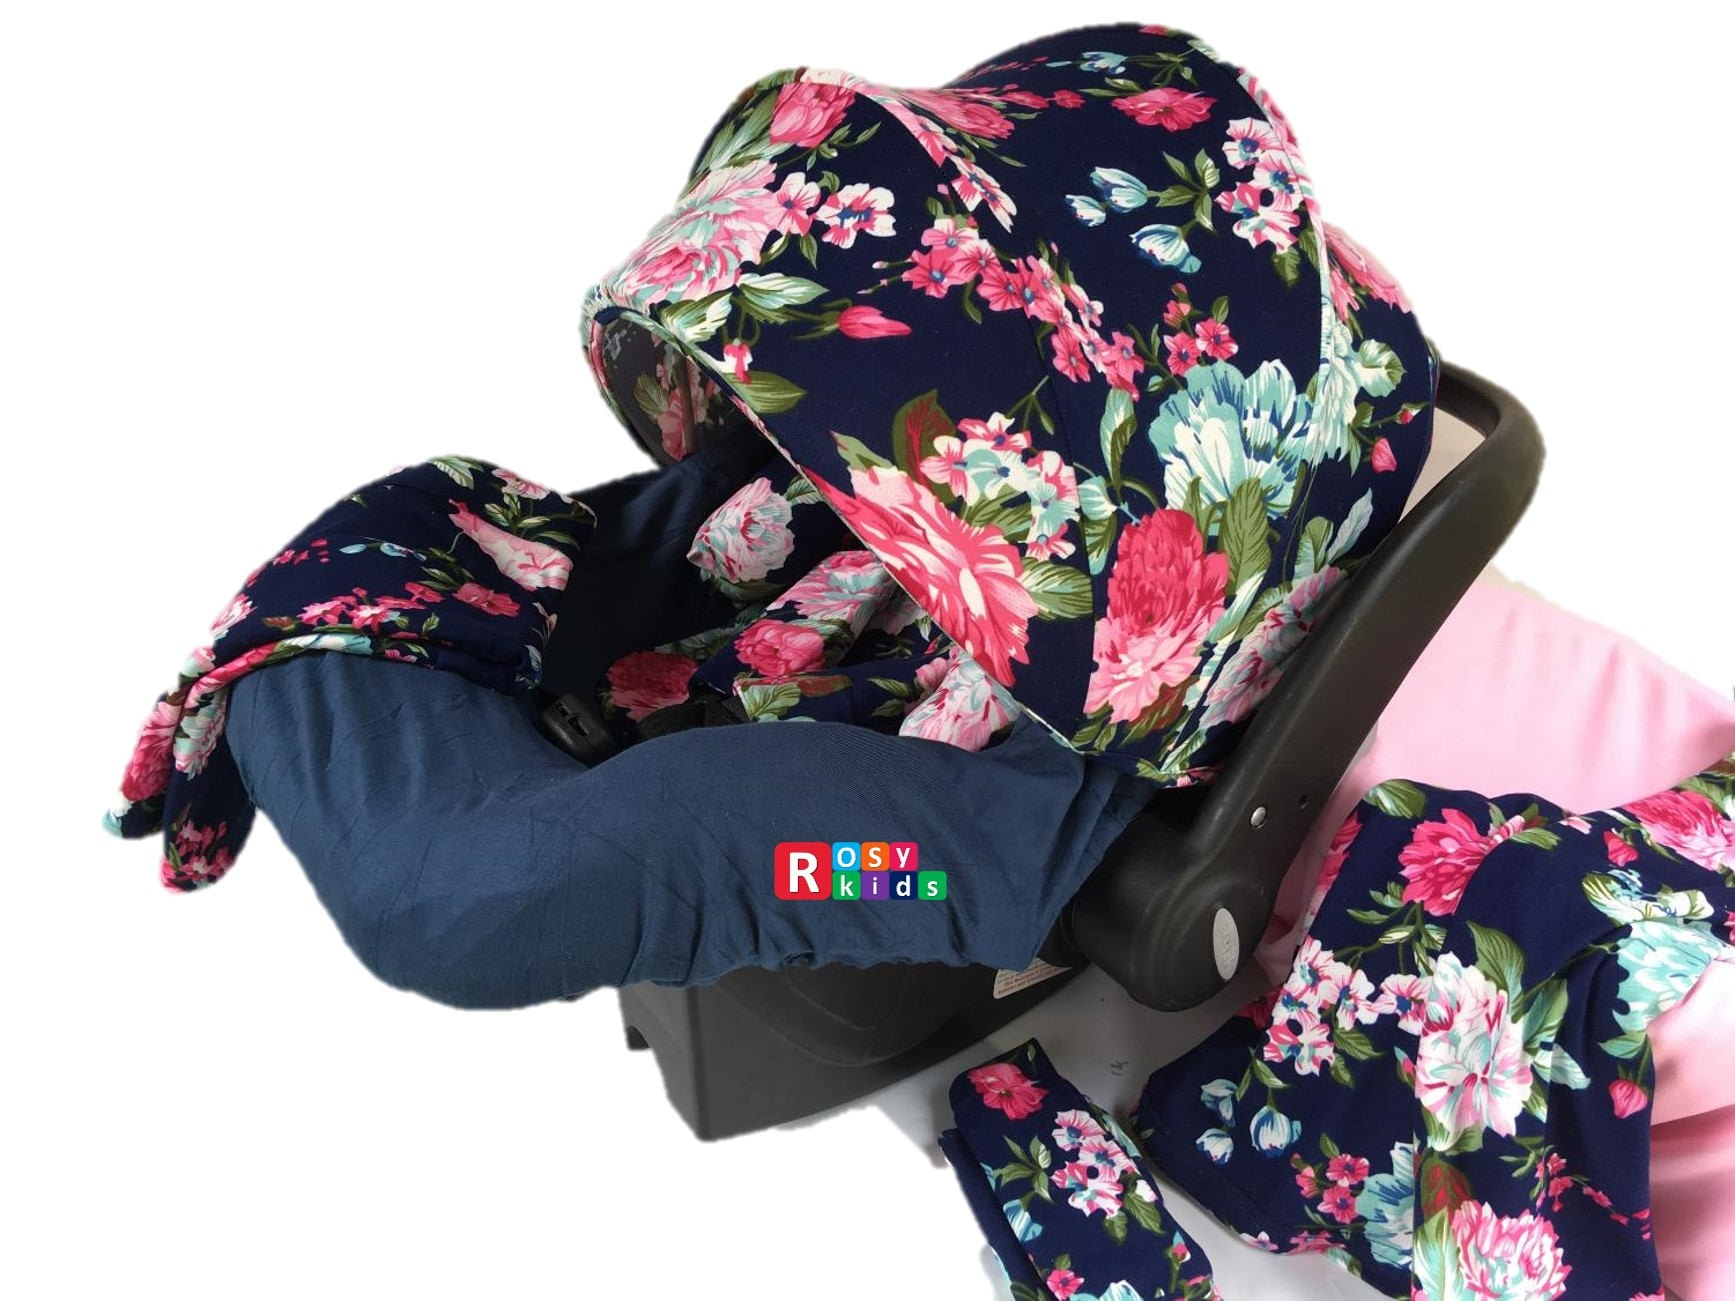 9pc Baby Boy Baby Girl Ultimate Set of Infant Car Seat Cover Canopy ...